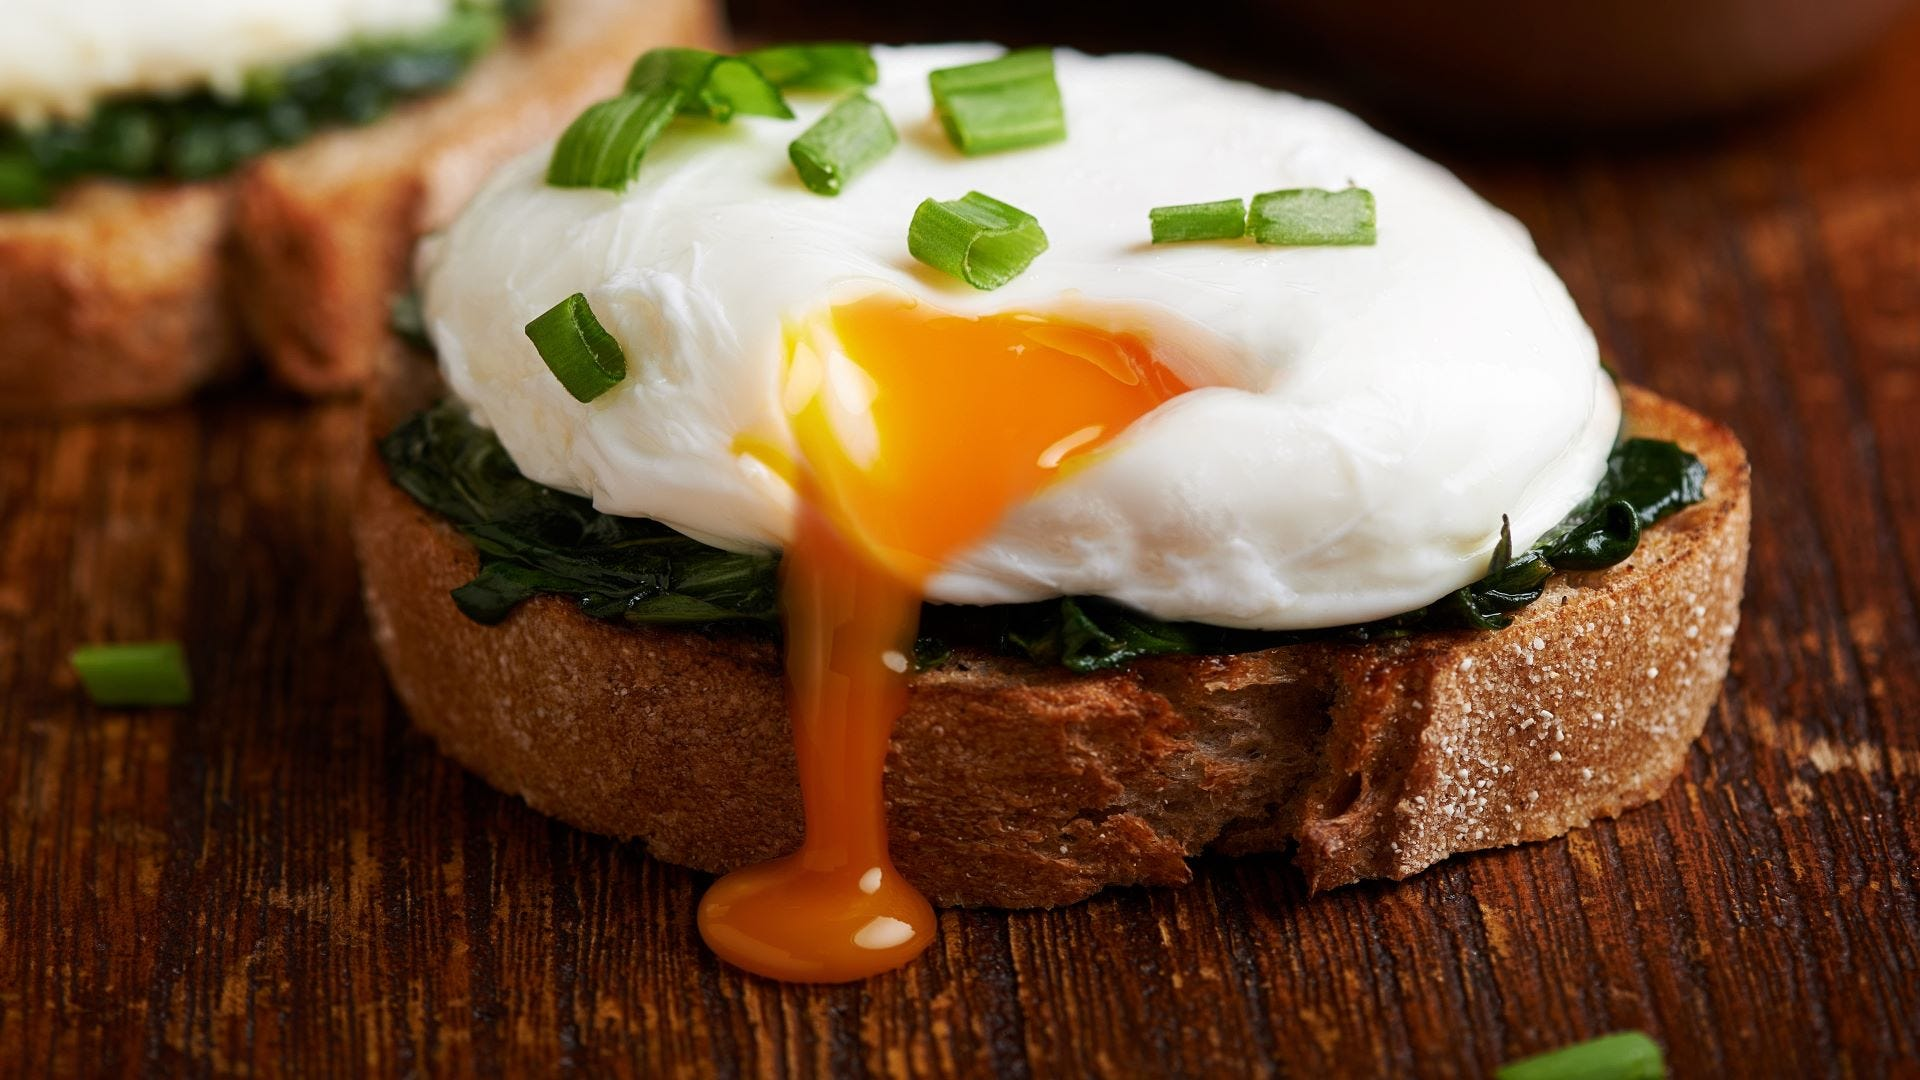 A poached egg on a piece of bread with spinach.